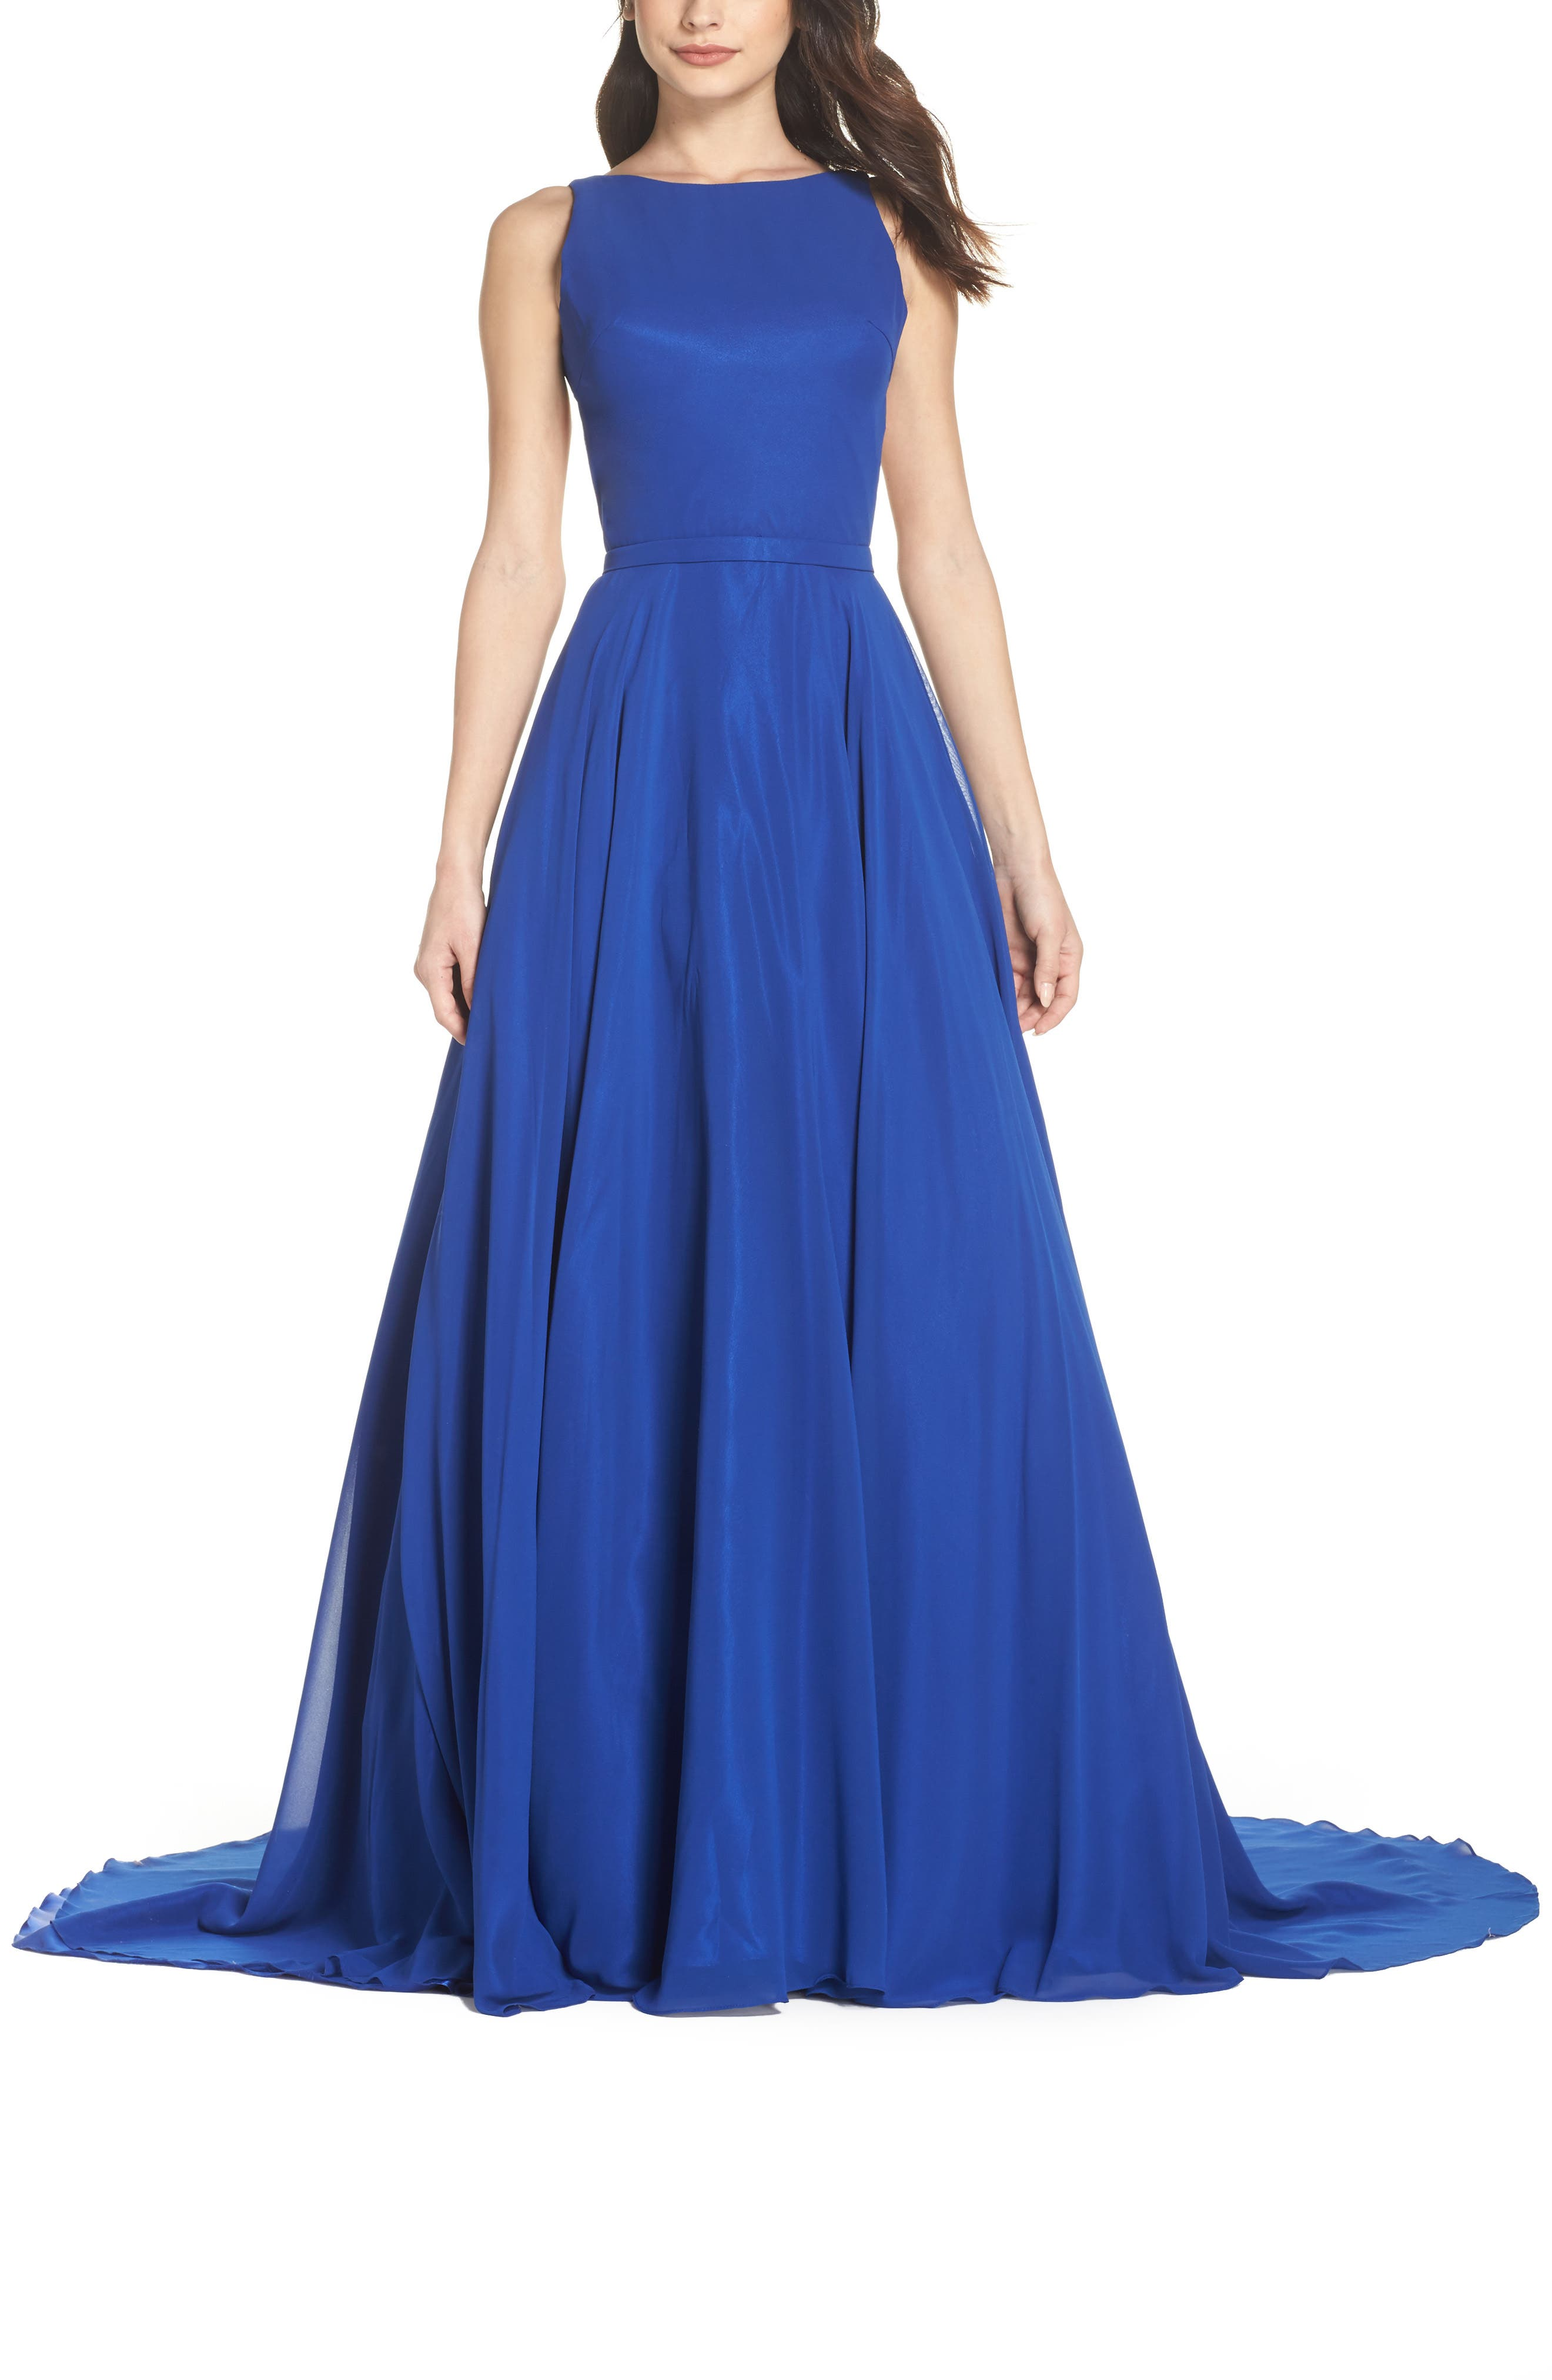 Image of IEENA FOR MAC DUGGAL High Neck Sleeveless Gown